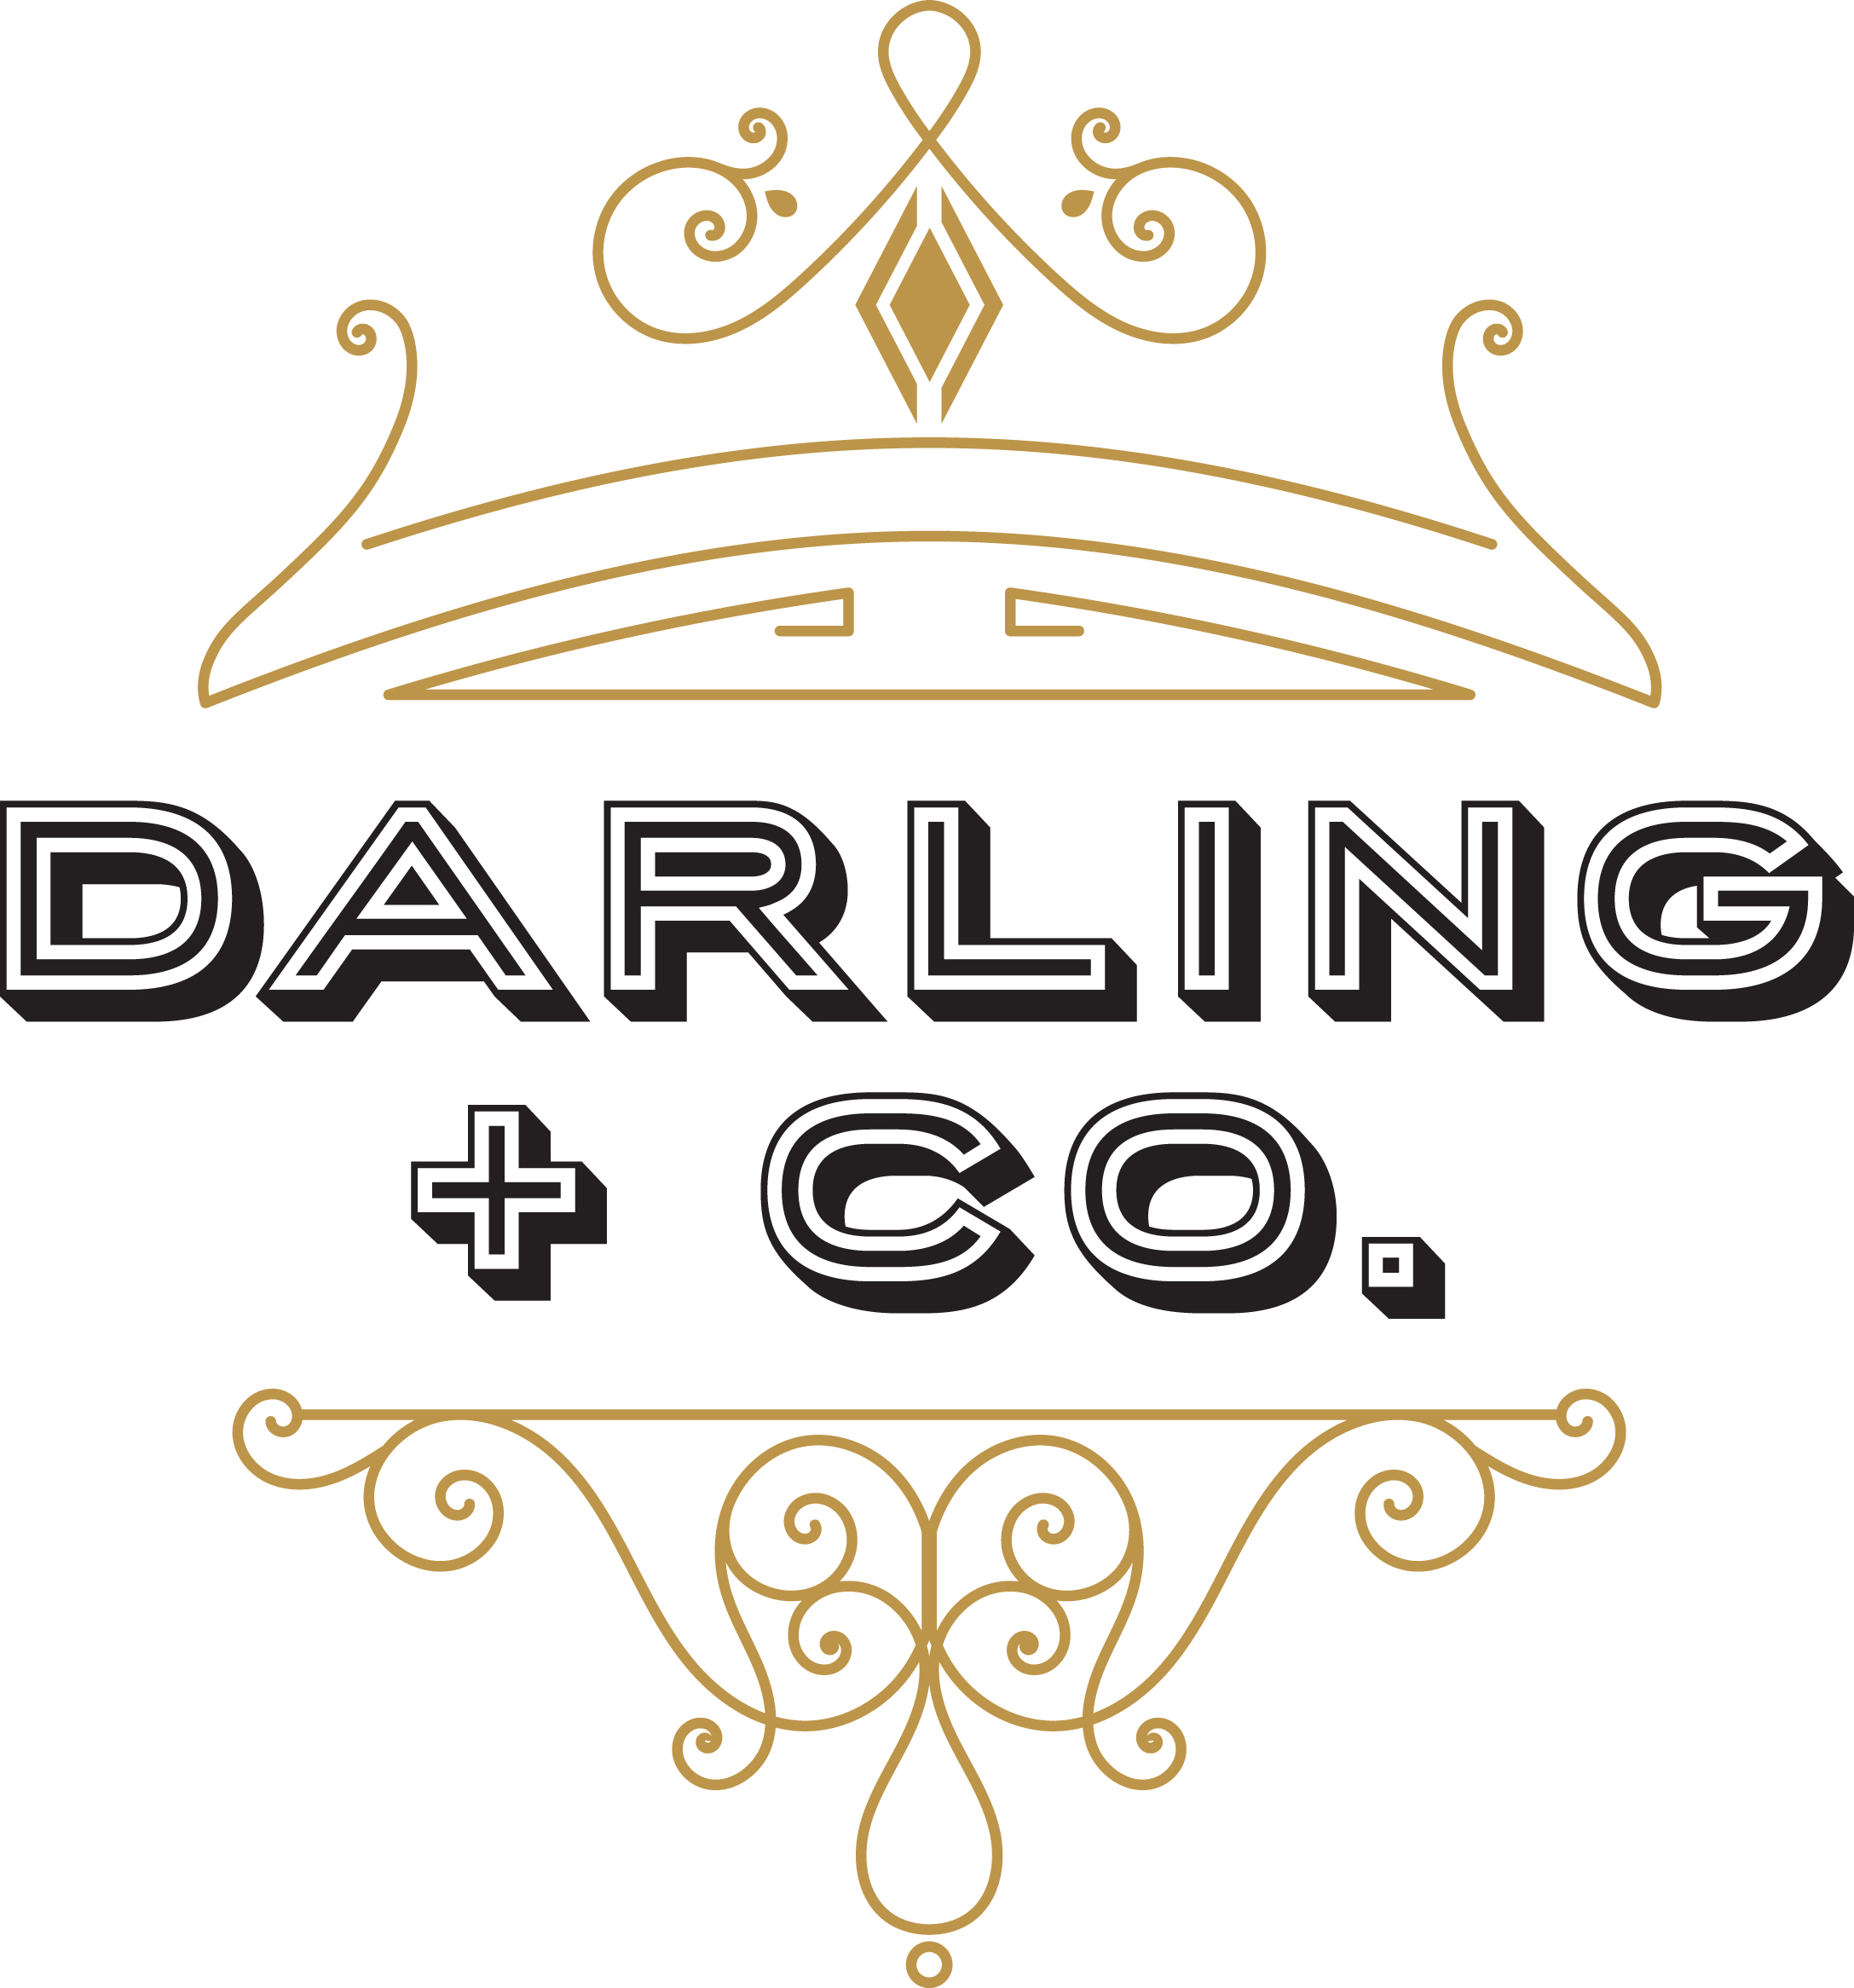 Darling & Co. Hair Salon